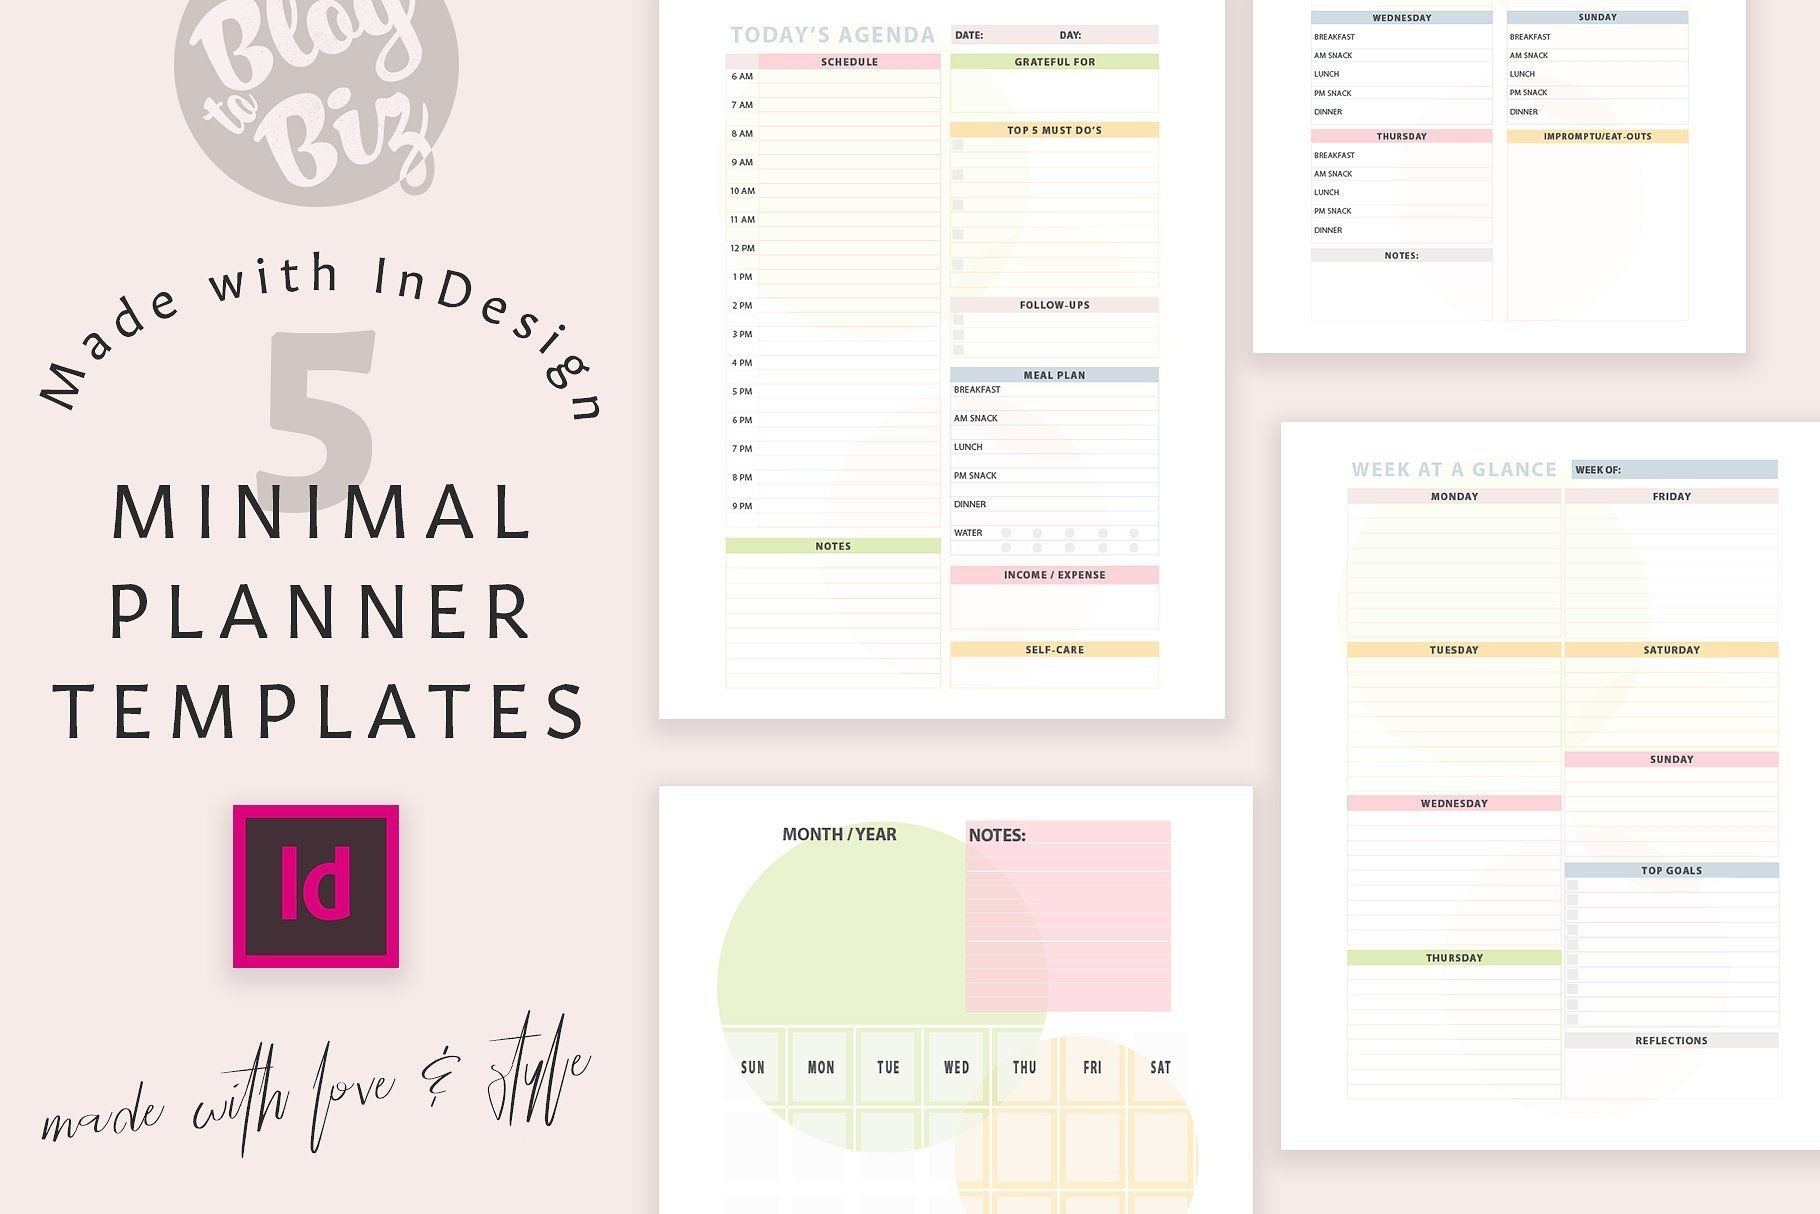 Planner Templates With Indesign By Blog To Biz On-Planner Templates For Indesign